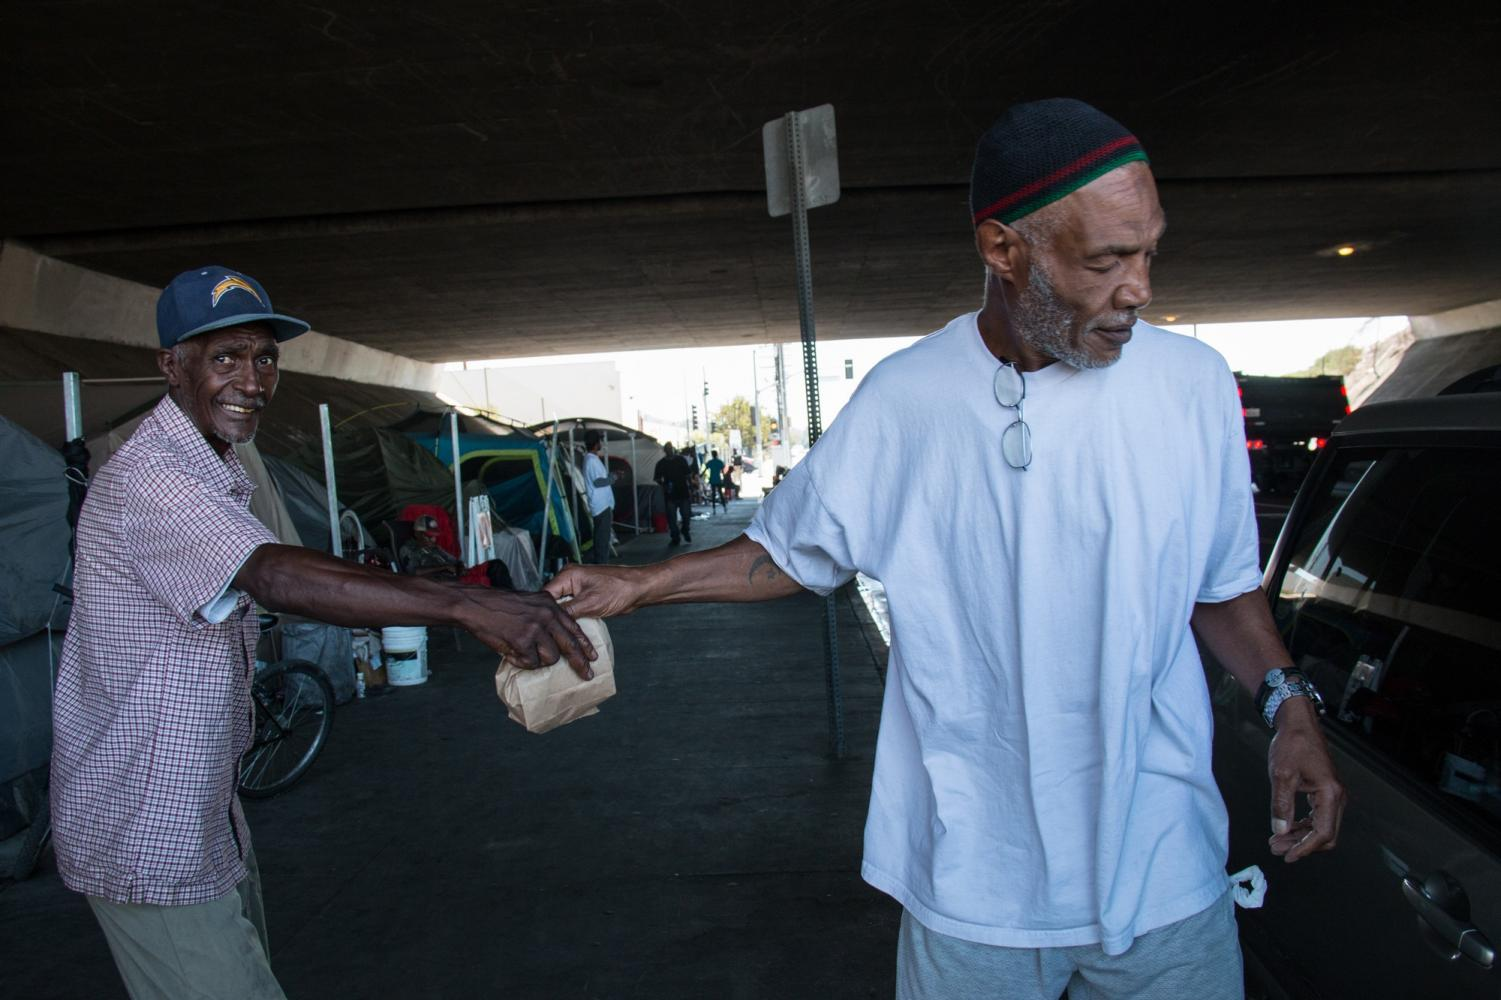 Ali Muhammad, 63, passes a lunch to Duane Pierfax, 62. Pierfax is a homeless man living under a freeway overpass in Pacoima, California. Photo credit: Logan Bik